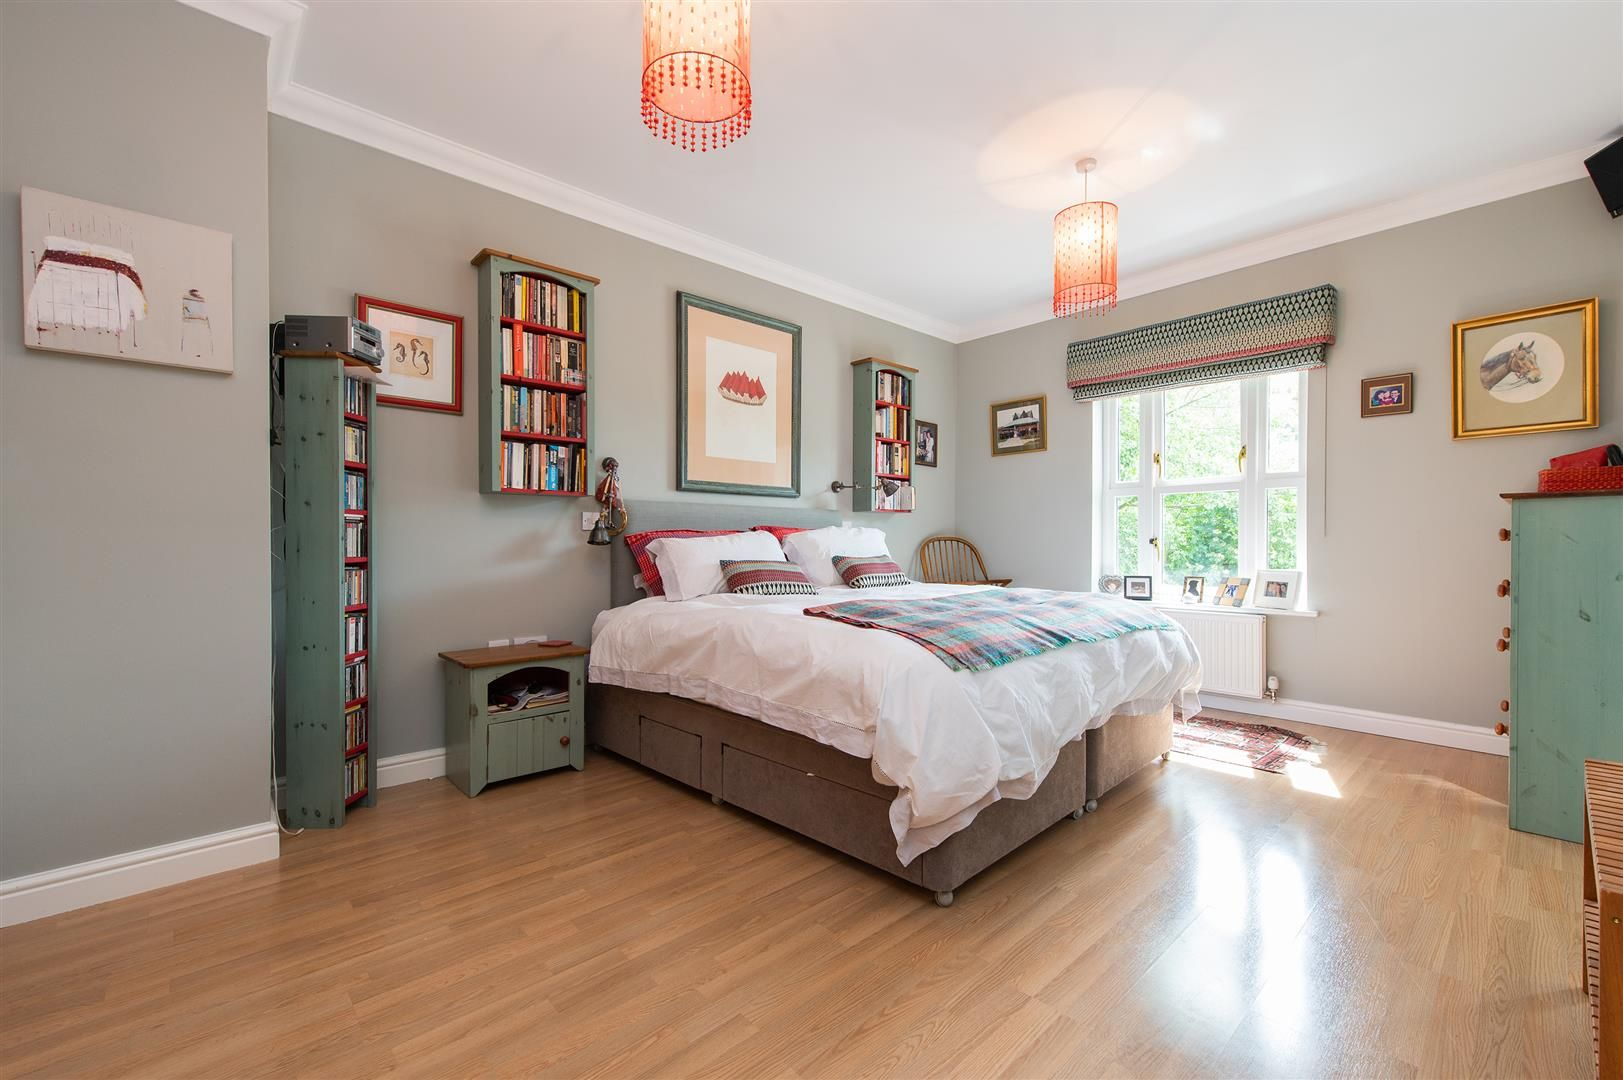 5 bed house for sale in Hagley 23